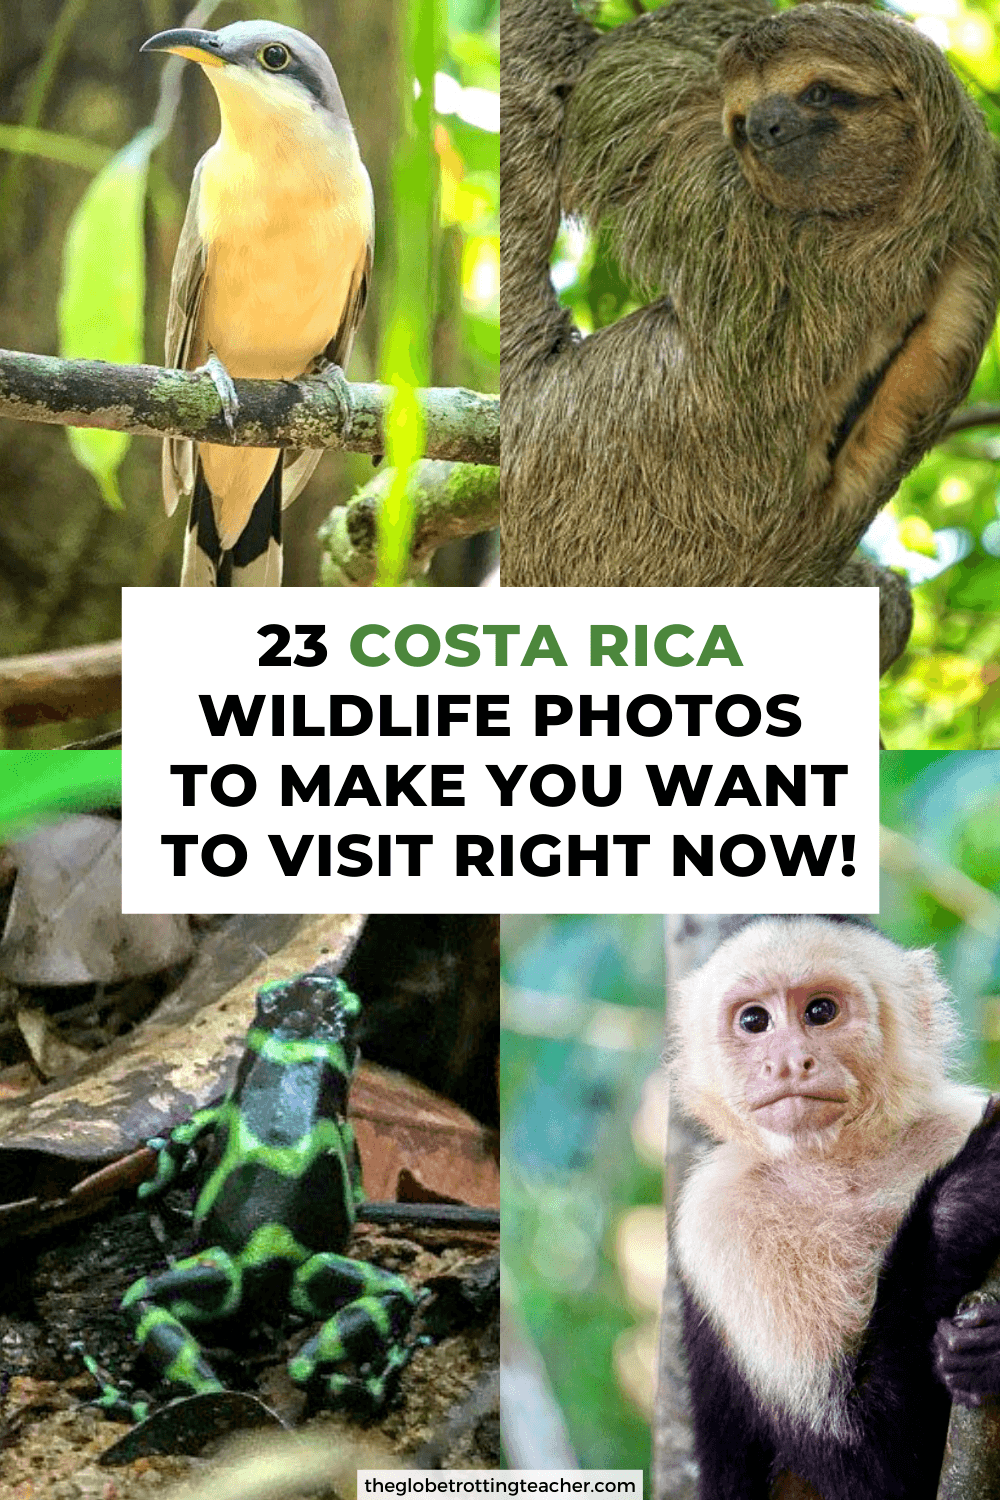 23 Costa Rica Wildlife Photos to Make You Want to Visit Right Now!